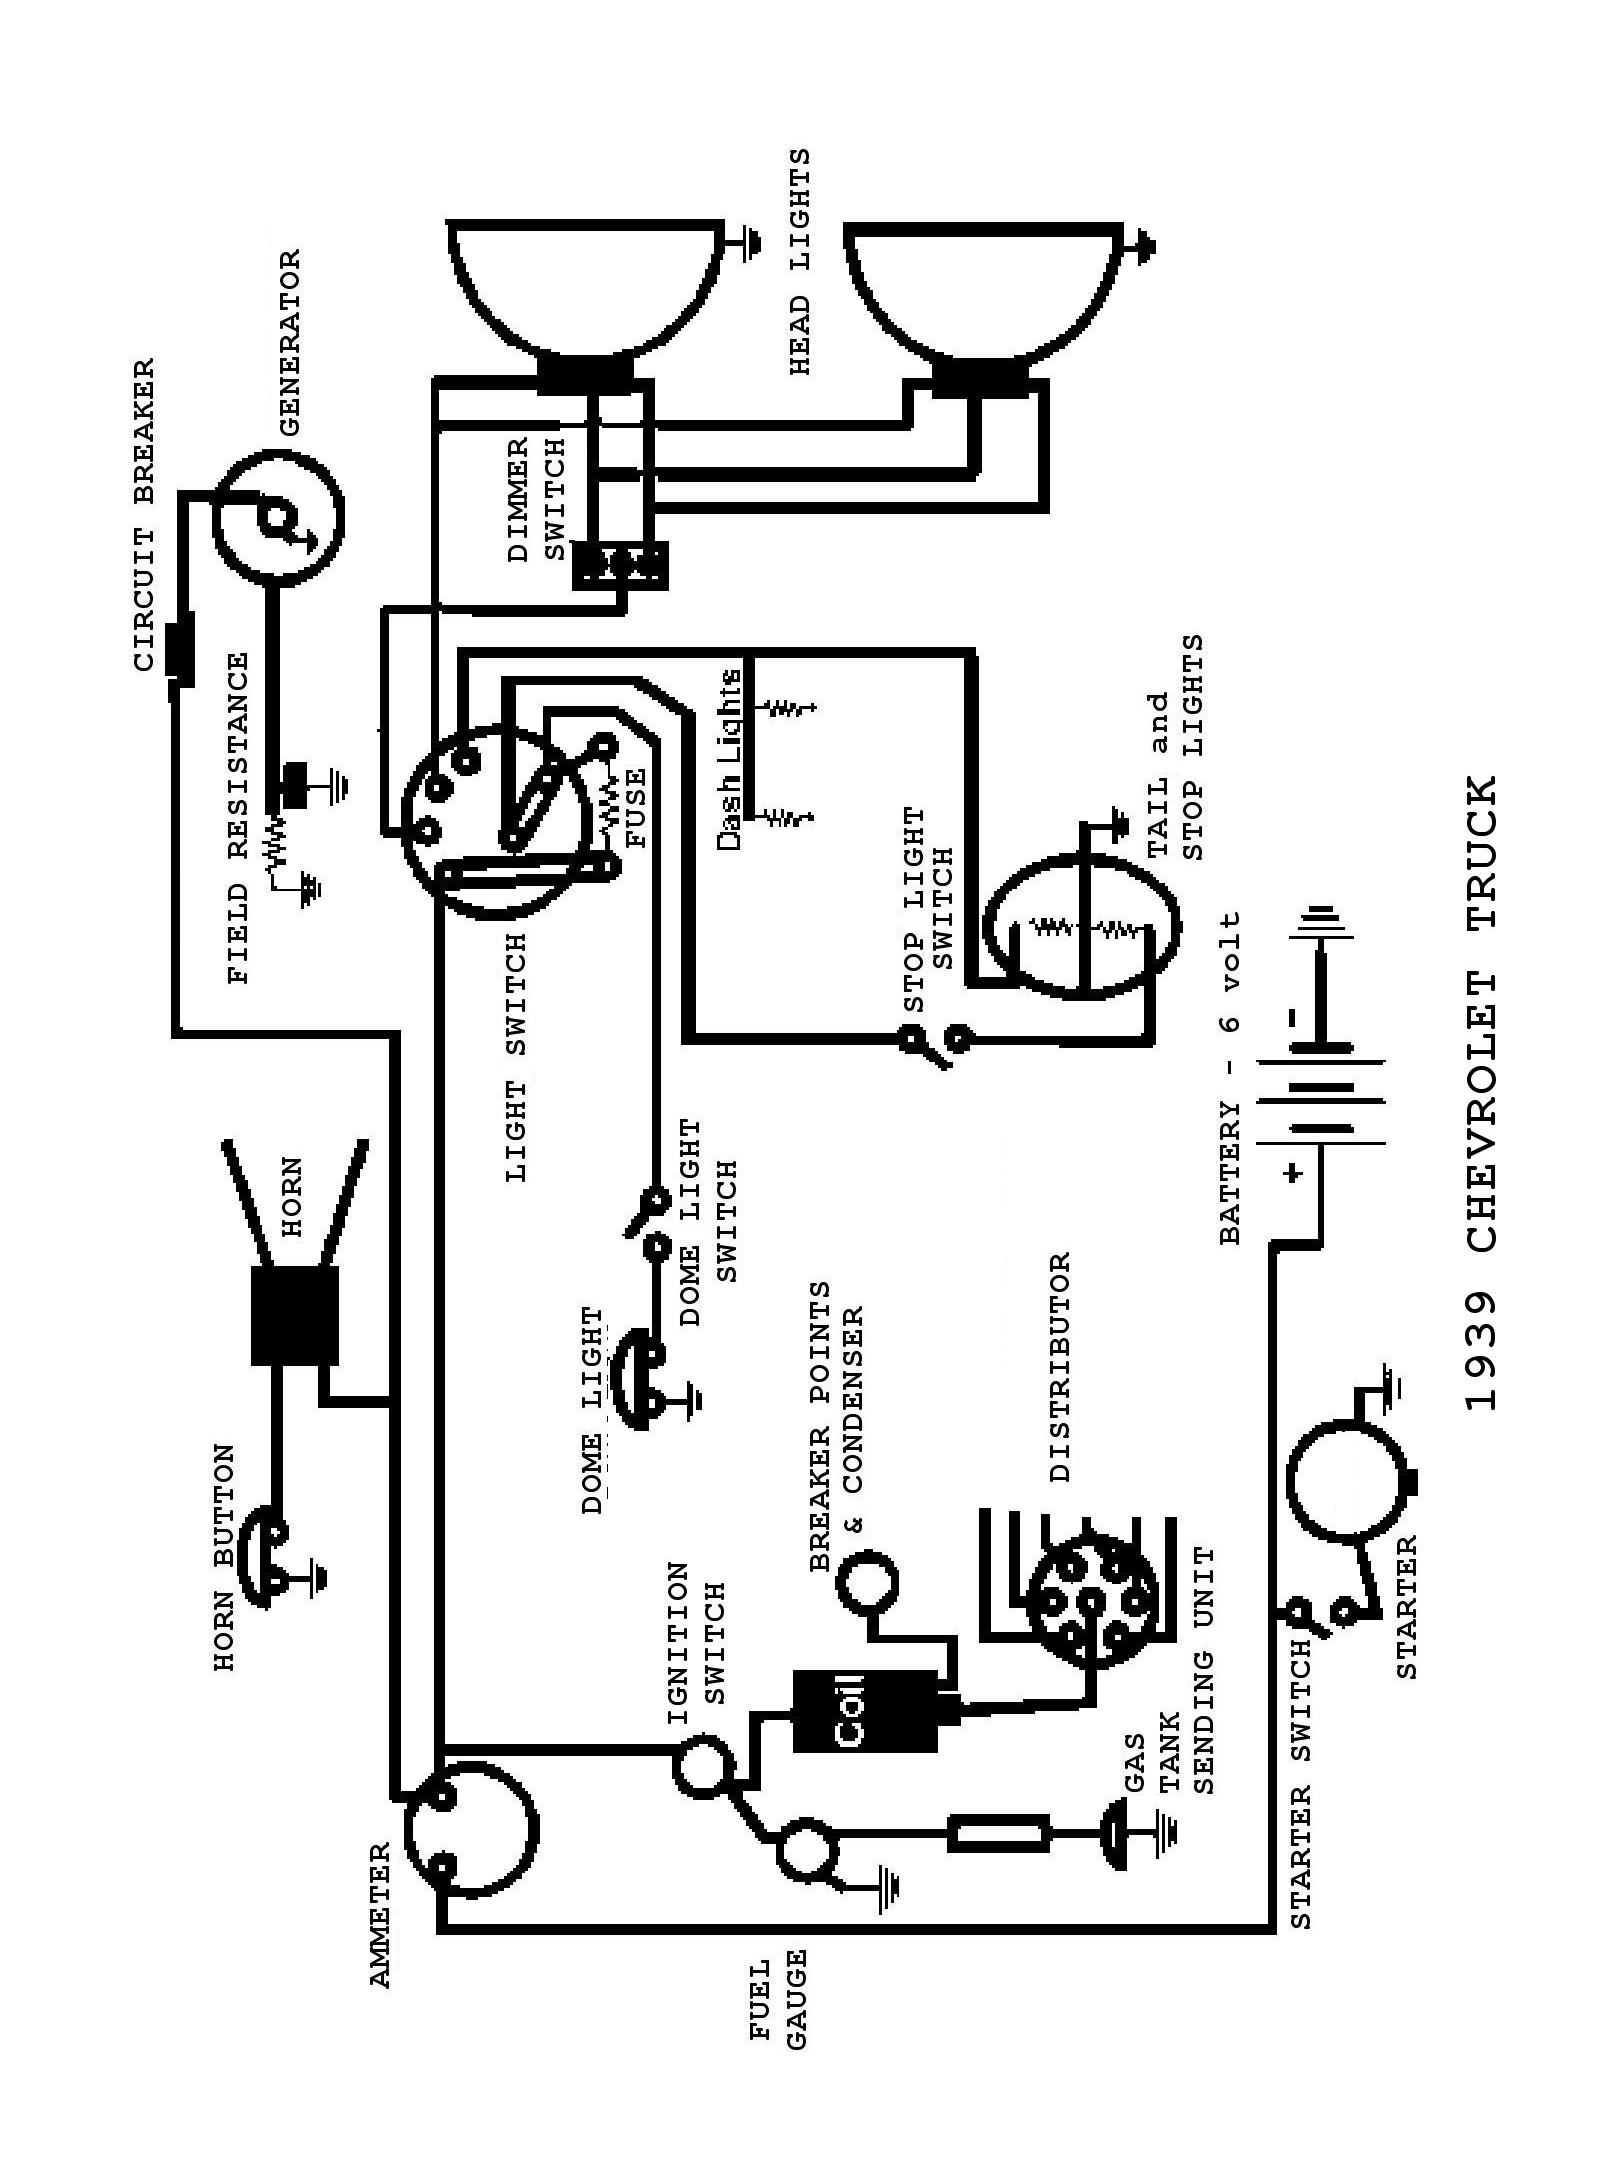 international 444 tractor wiring diagram with Wiring on Watch additionally Viewit together with Awesome Regulator Generator Farmall H Wiring Diagram Light Switch Controller Coil Farmall H Wiring Diagram Distributor as well Ingition Switch 12 Volt Alternator Wiring Diagram as well 2775765122.